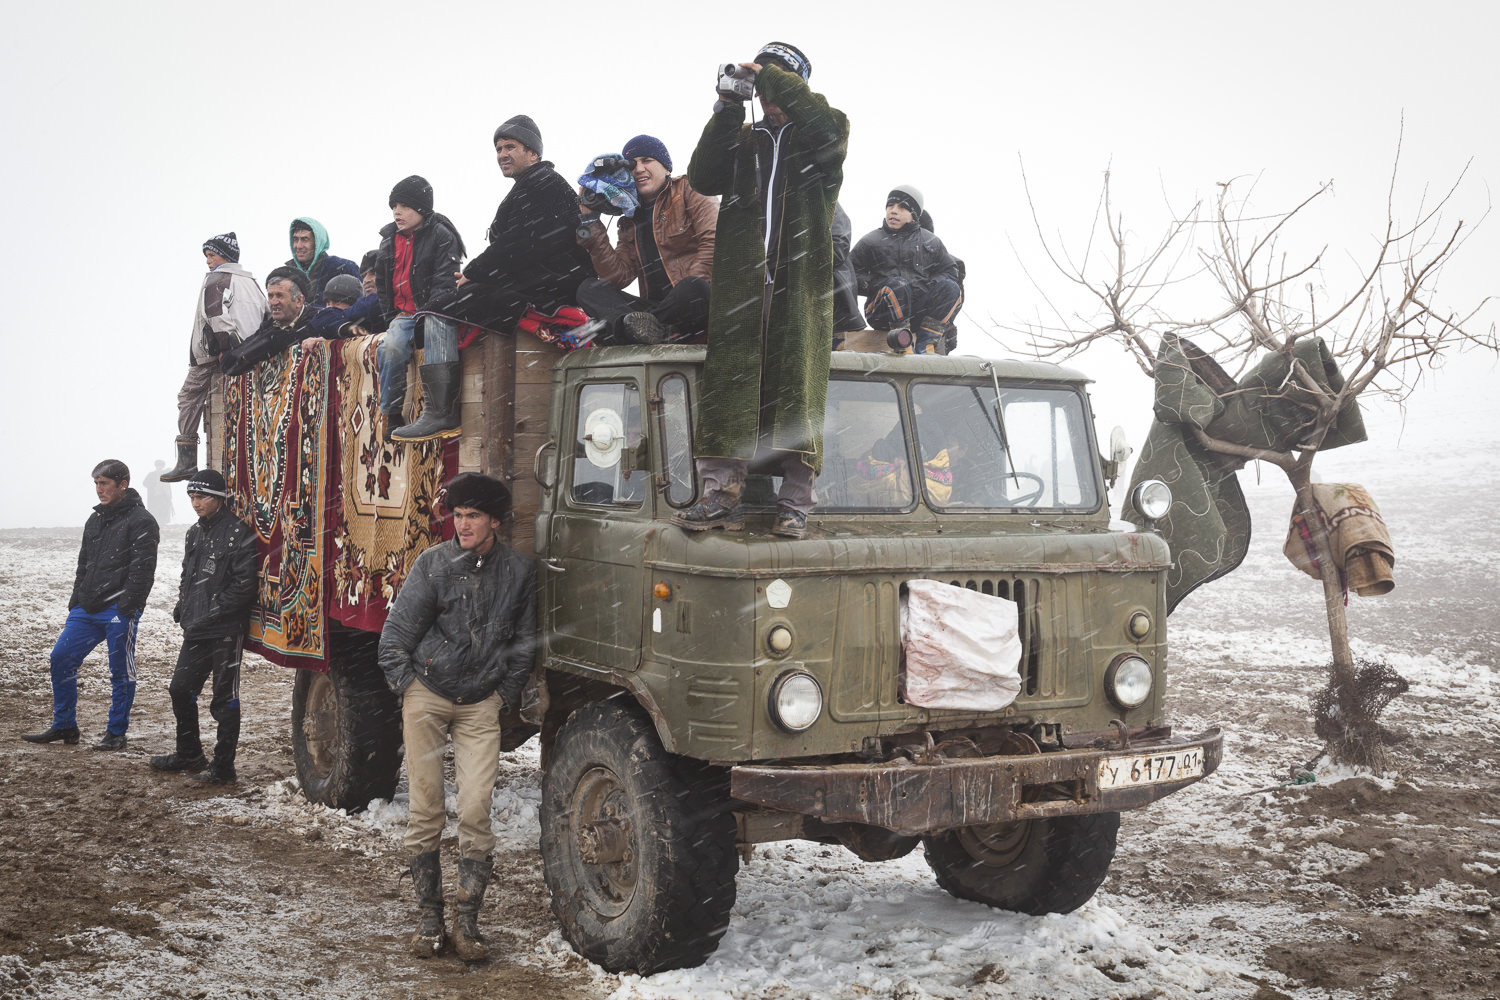 Buzkashi fans cluster around a truck holding competition prizes.